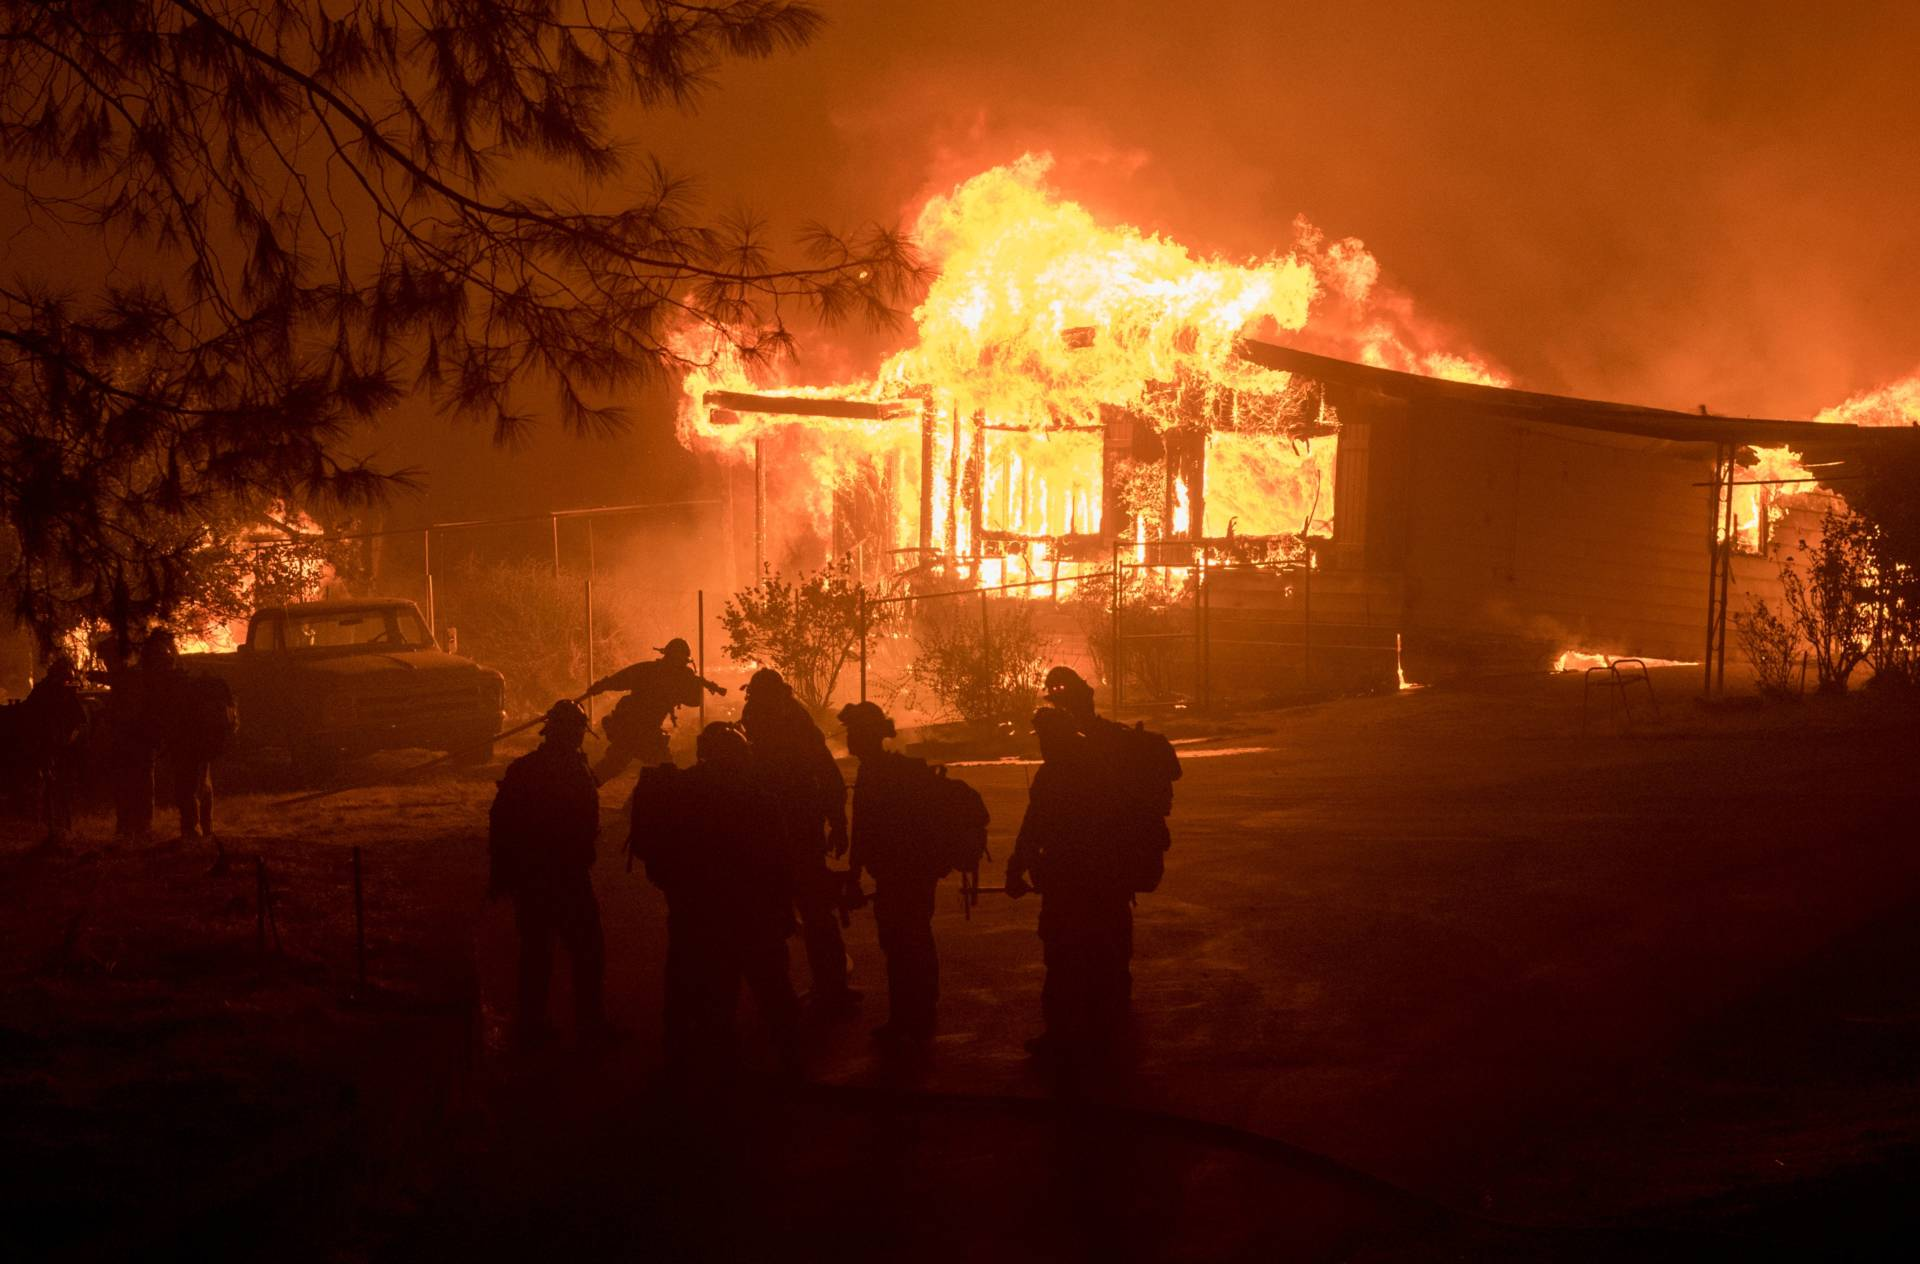 A firefighter carries a hose as a house burns Saturday night east of Oroville. The home was one of 17 structures destroyed by the Wall Fire, which broke out in rural Butte County on Friday. Josh Edelson/AFP-GettyImages